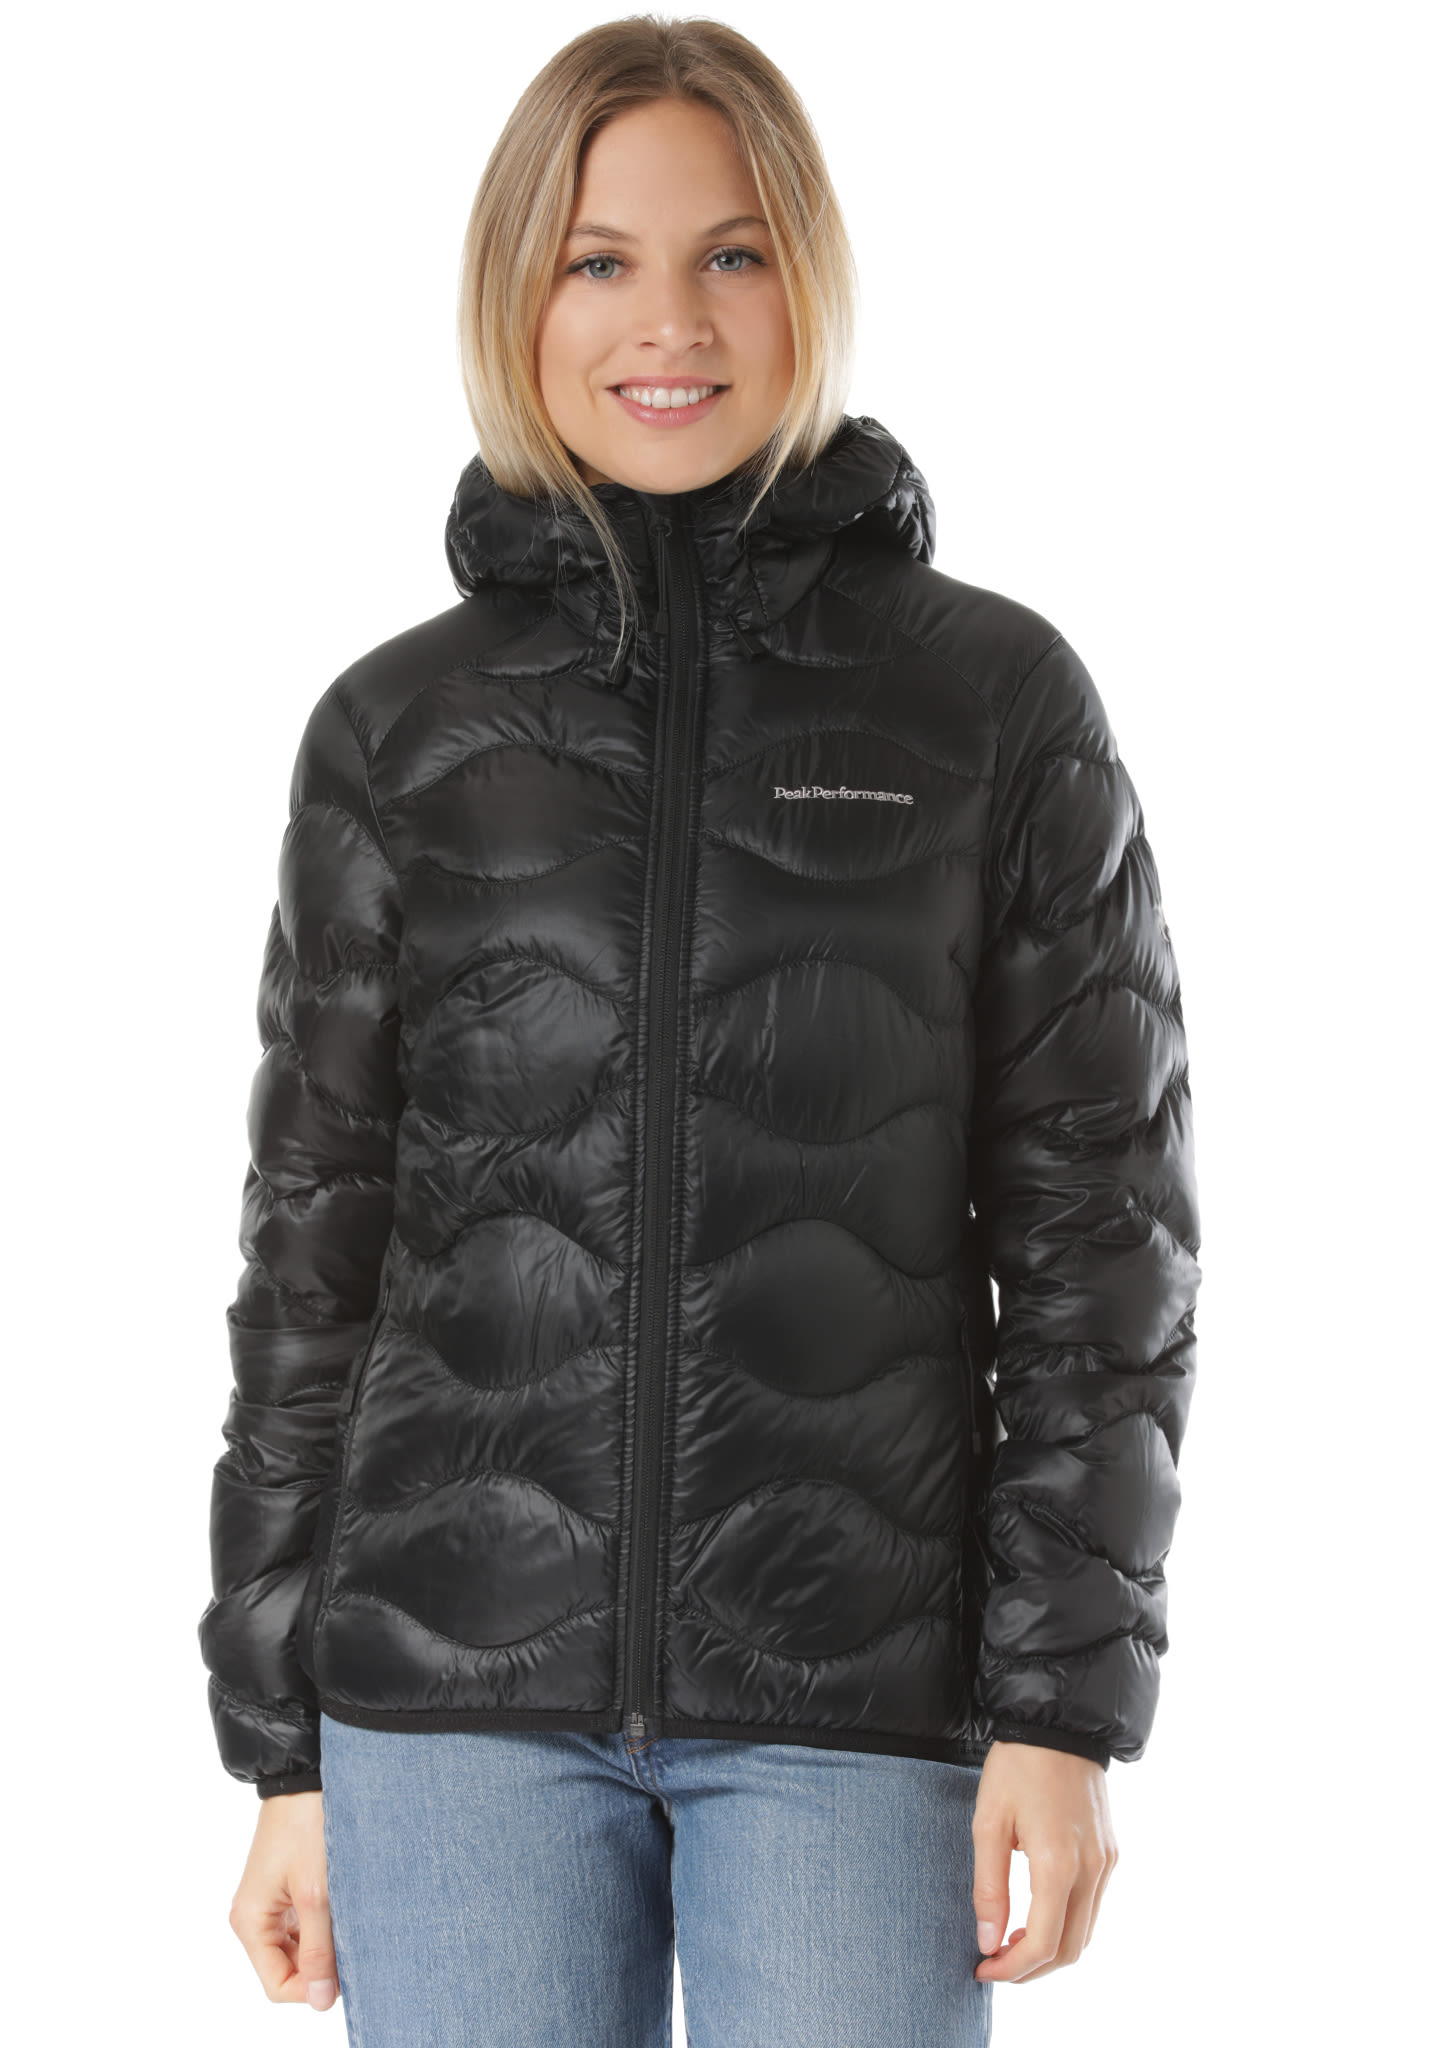 PEAK PERFORMANCE Helium Outdoorjacke für Damen Schwarz